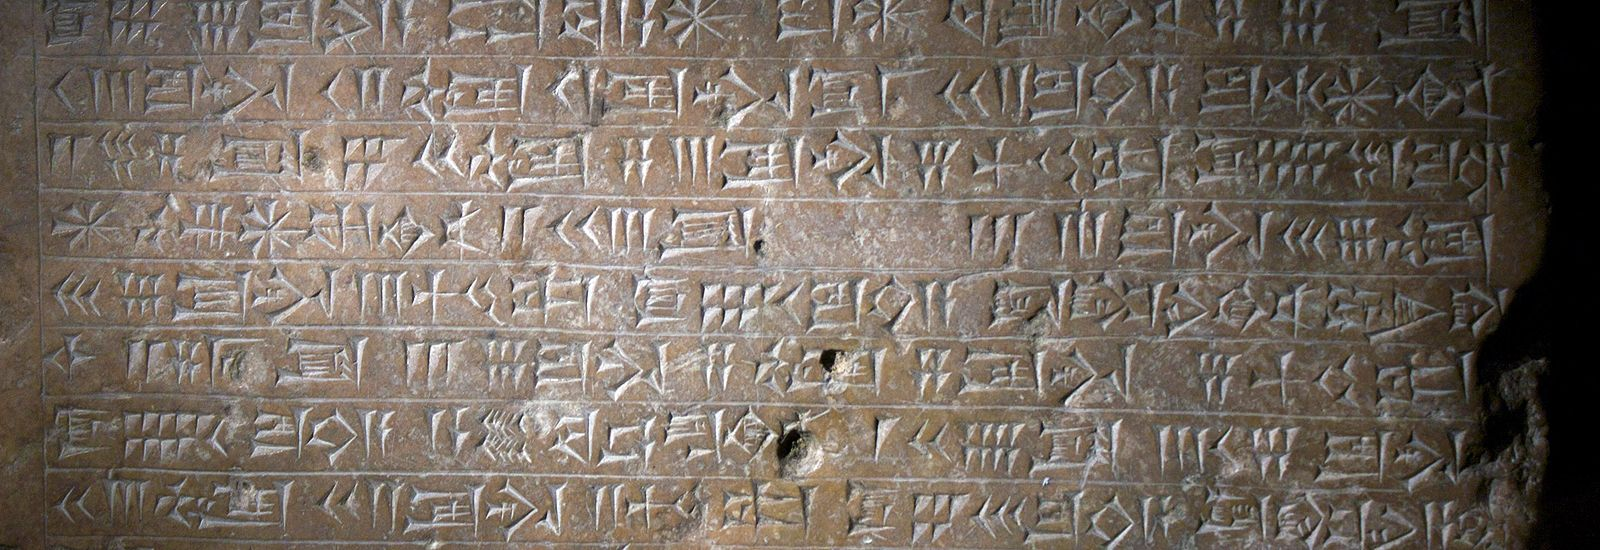 A close up of cuneiform engraved into a stone tablet